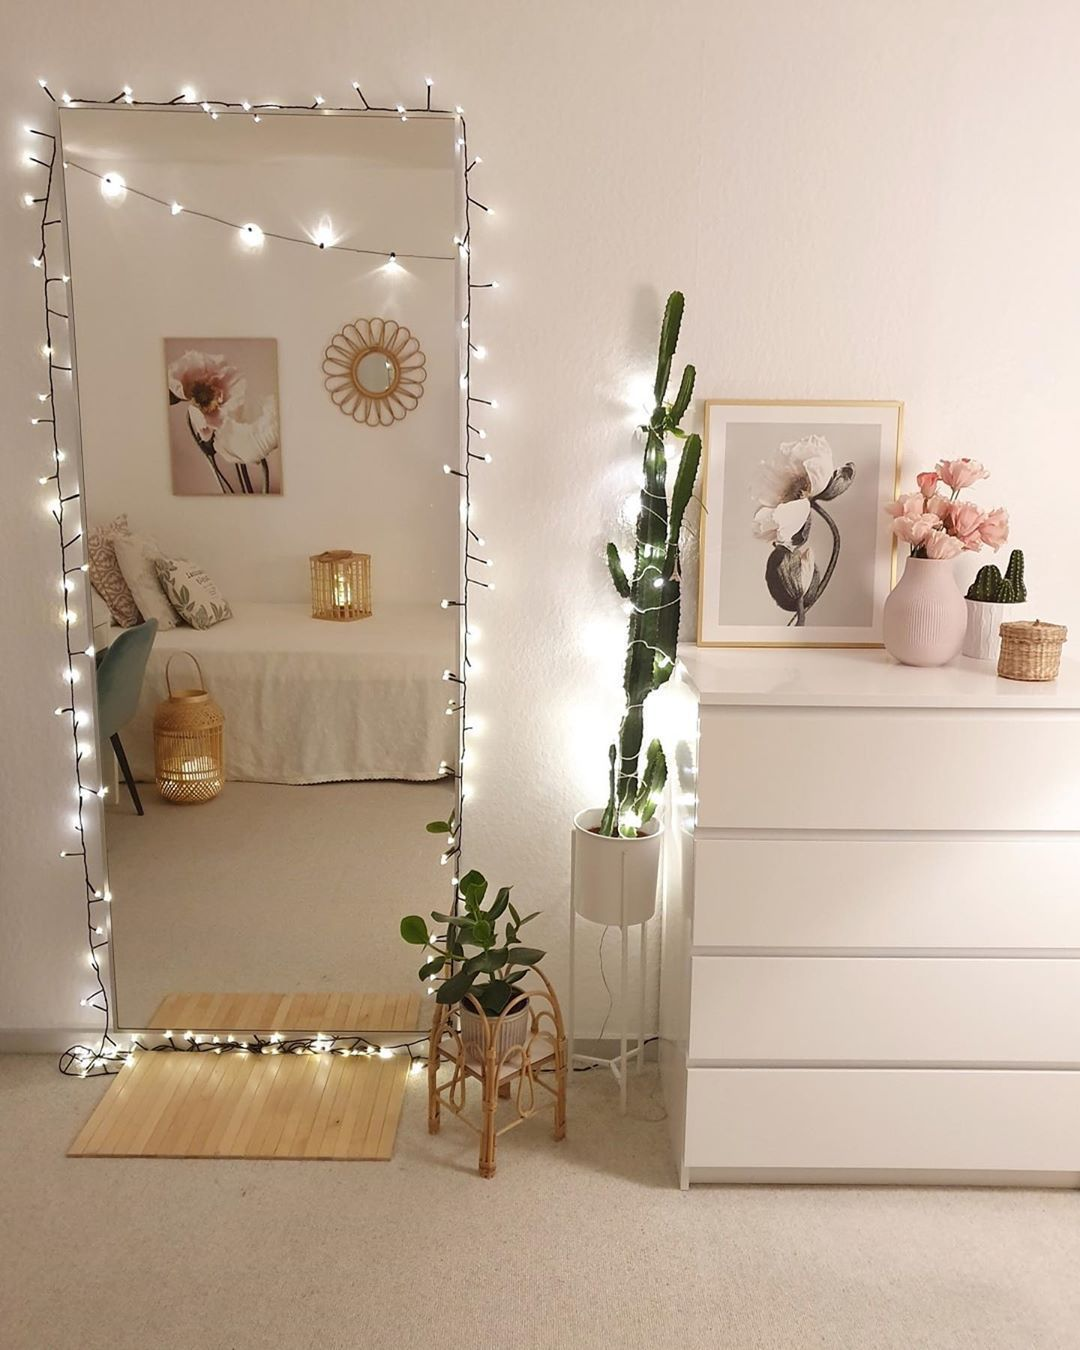 Home Decor Inspiration On Instagram Via My Homely Decor In Love With This Dreamy Styling By In 2020 Aesthetic Room Decor Room Decor Girl Bedroom Decor